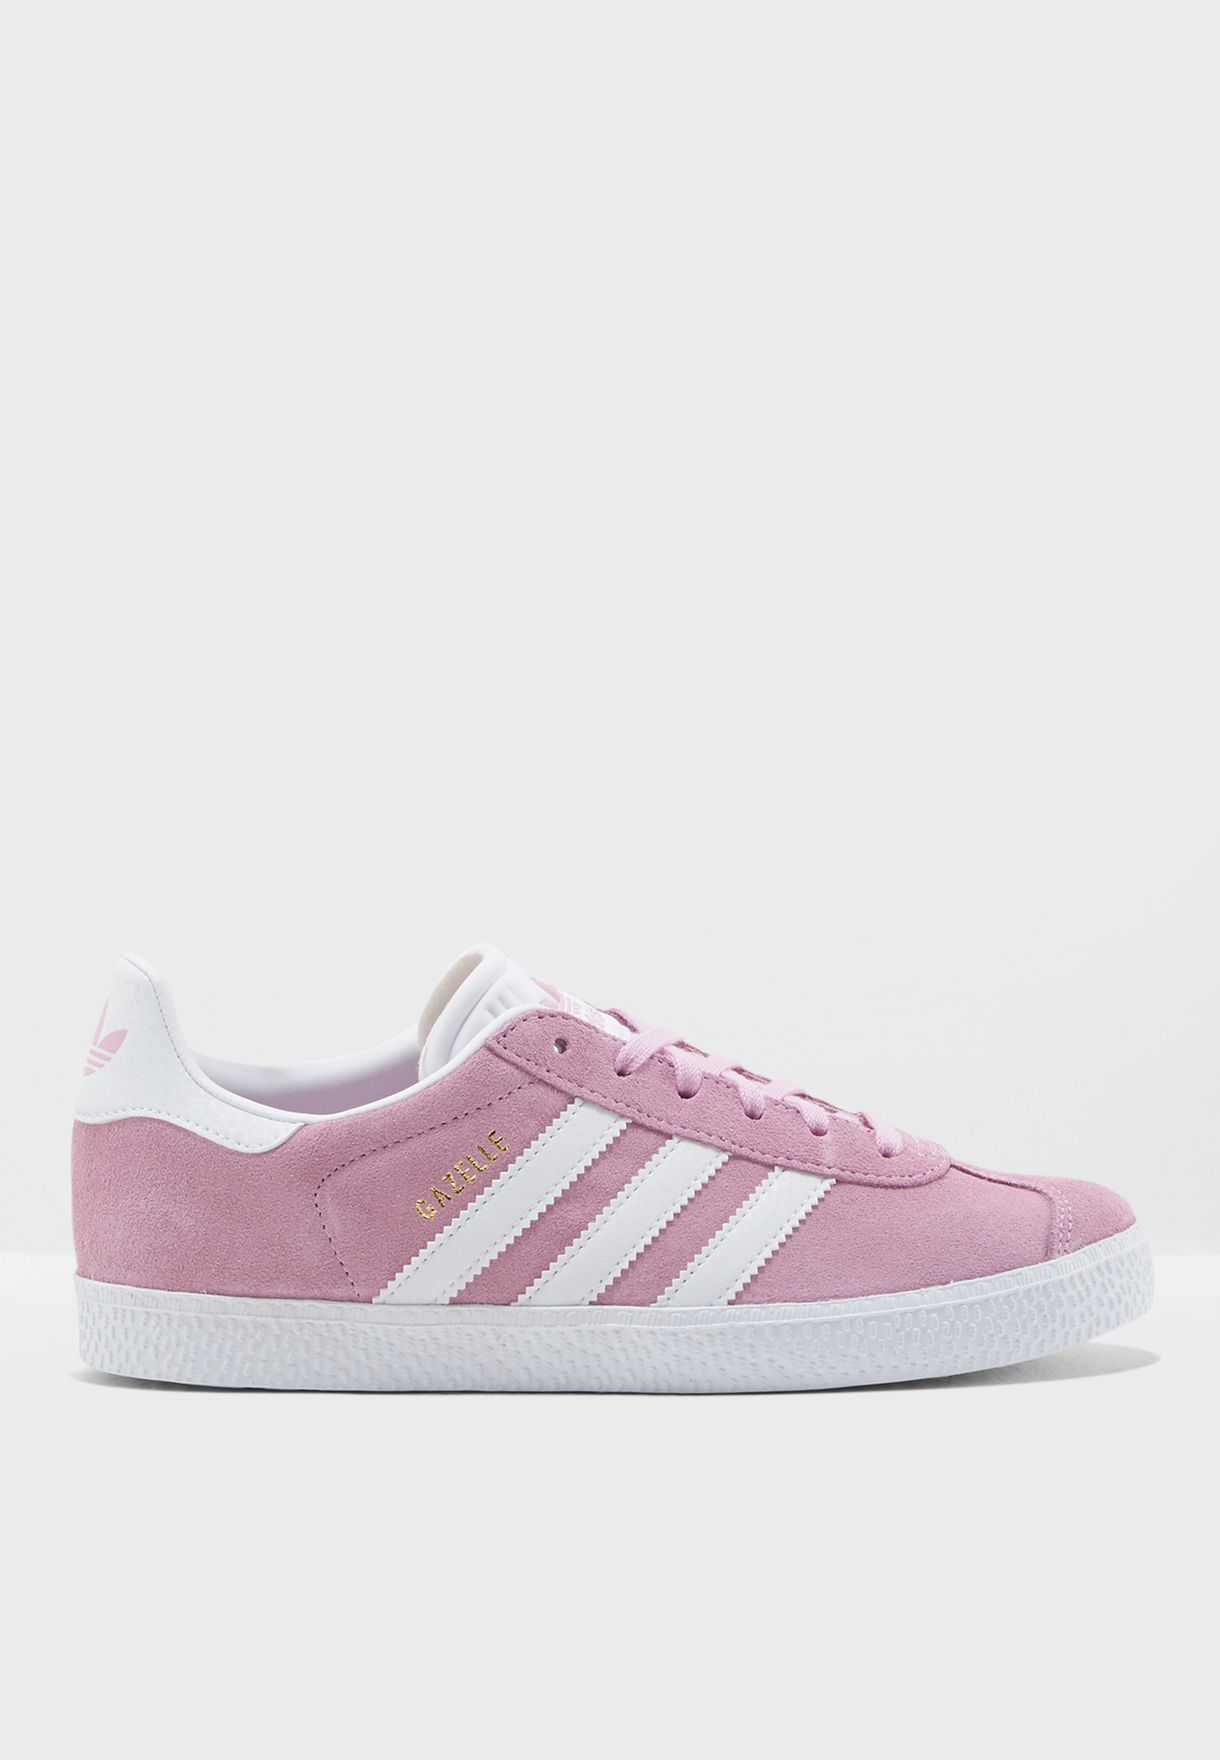 7bbbf43d2892 Shop adidas Originals pink Youth Gazelle B41902 for Kids in UAE ...